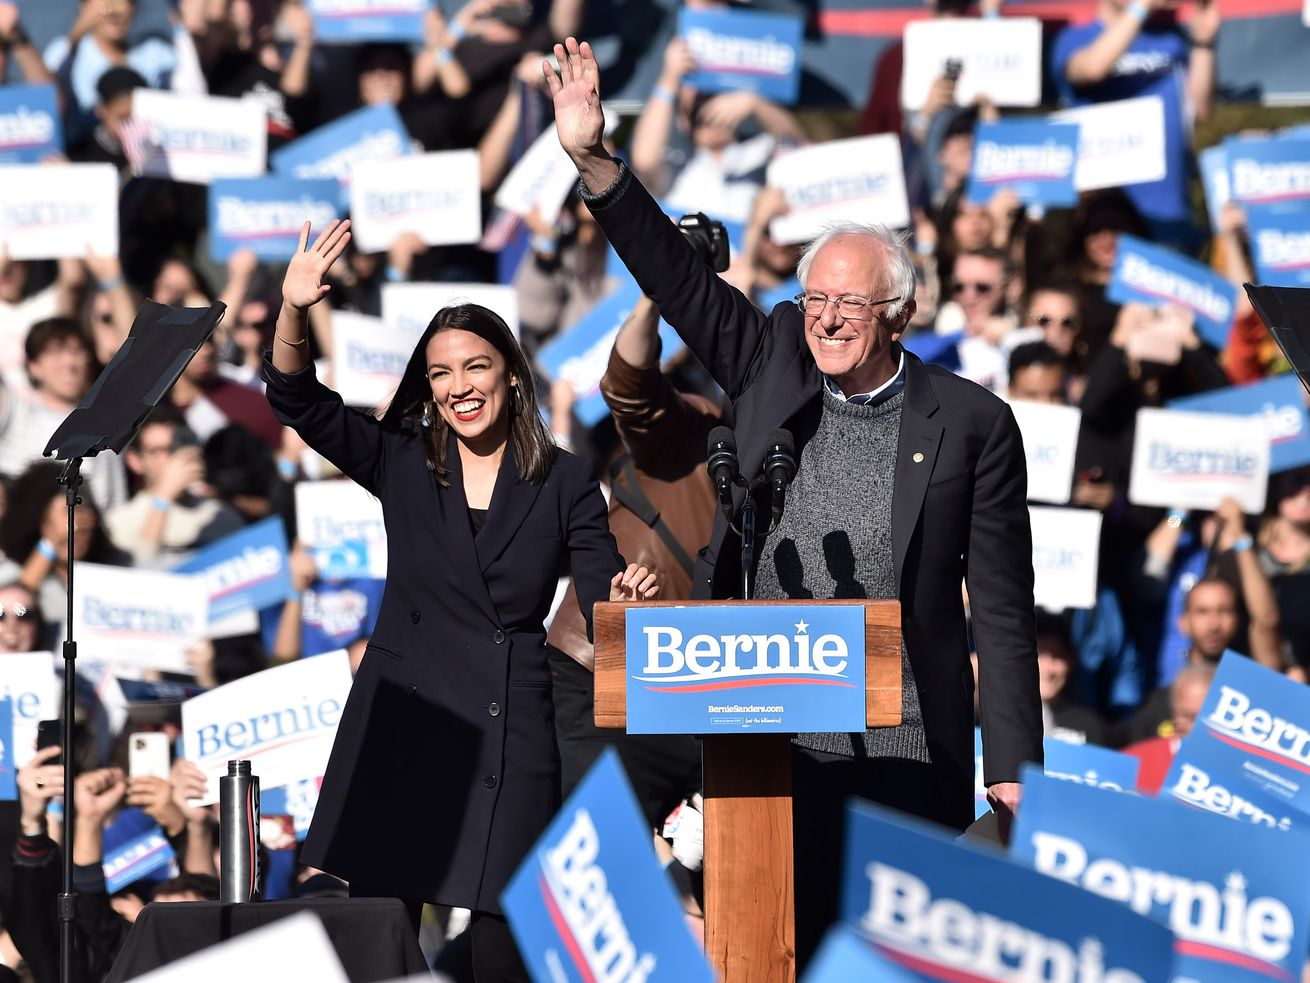 Sanders and AOC wave amid a sea of Bernie for president signs.